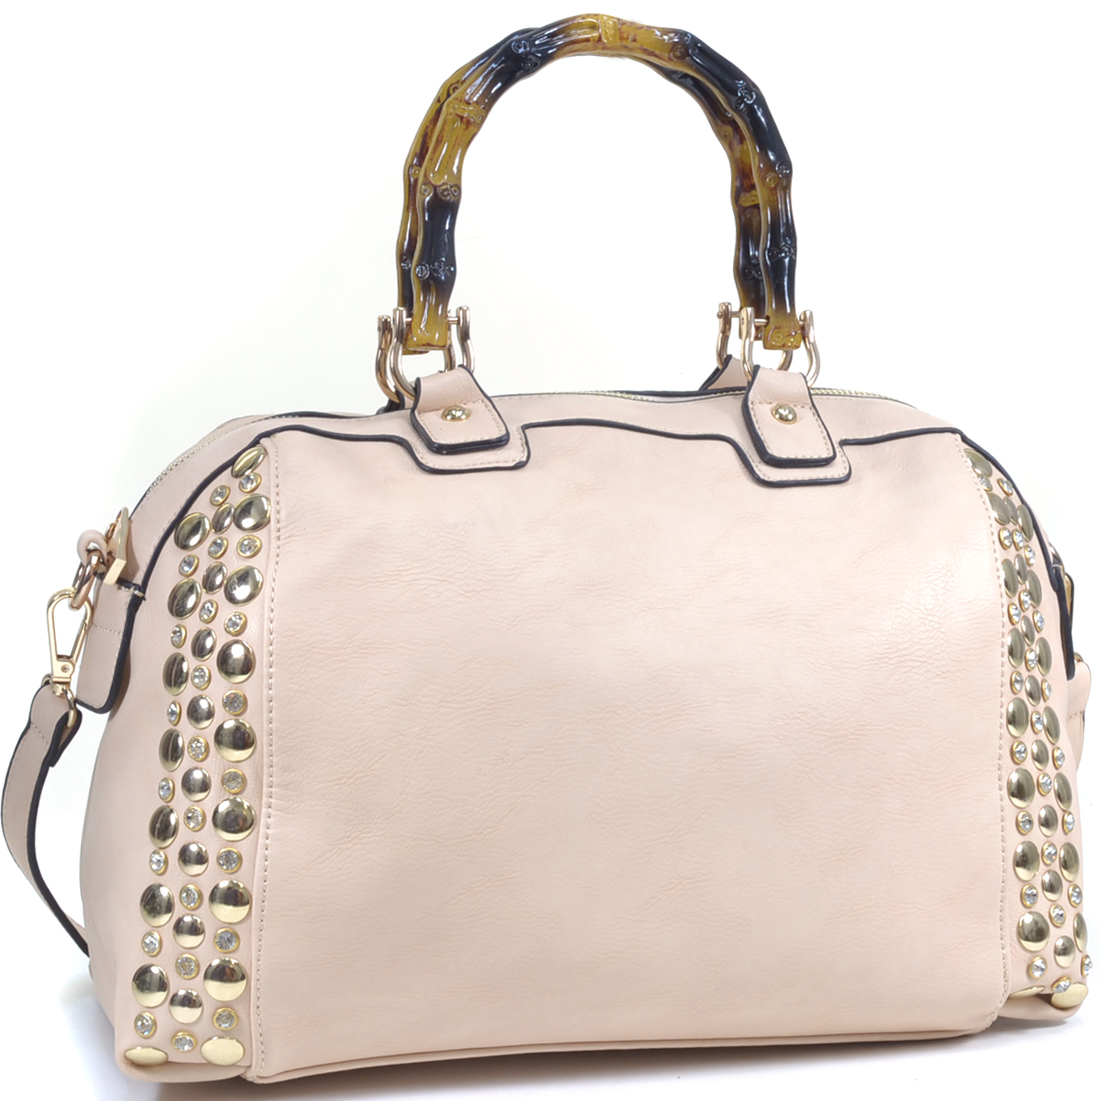 Rhinestone Studded Bamboo Handle Flat Bottom Bag w/ Shoulder Strap